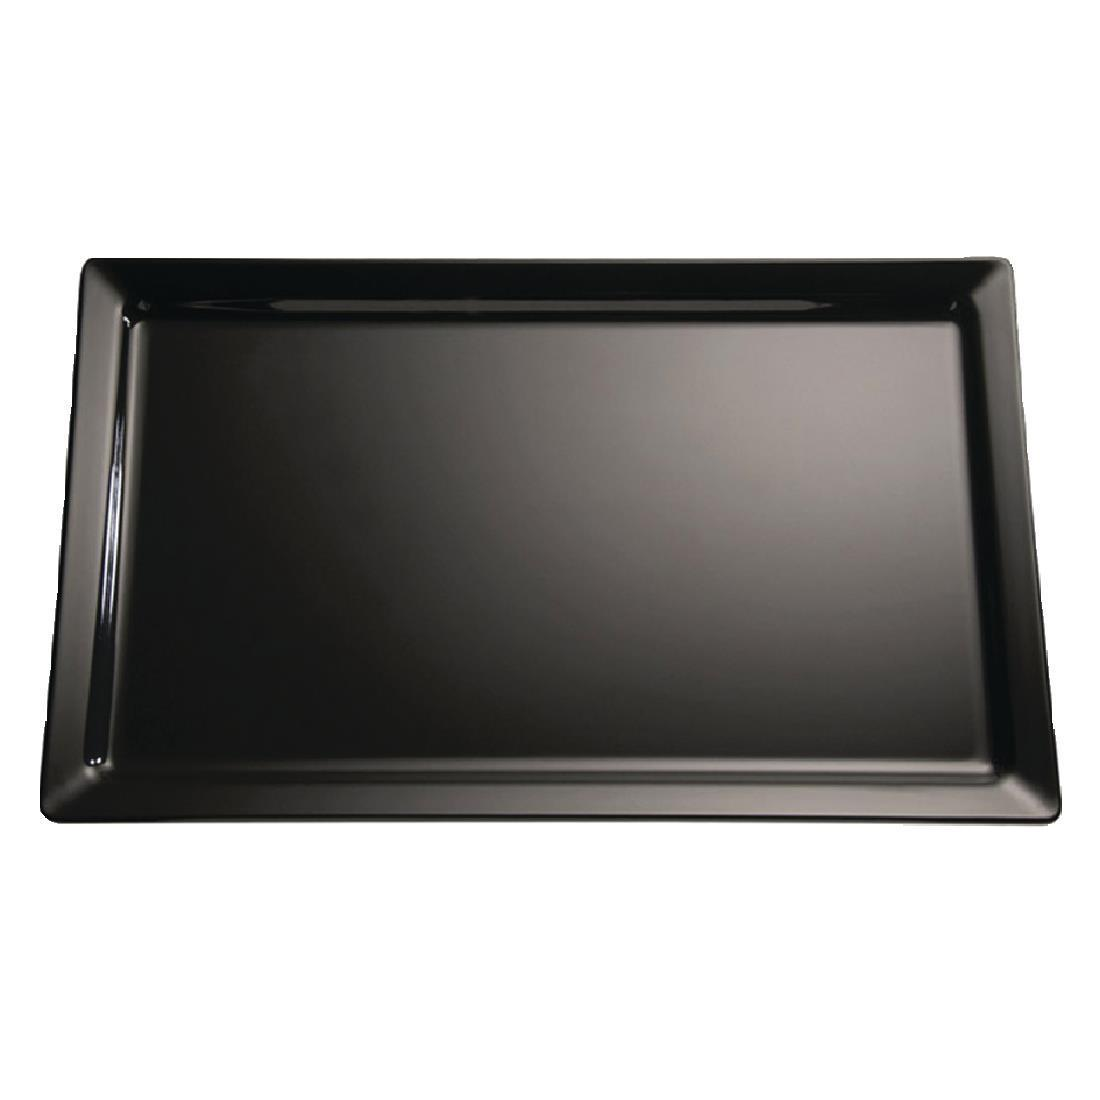 APS Pure Melamine Tray Black GN 1/4 - Each - GF127